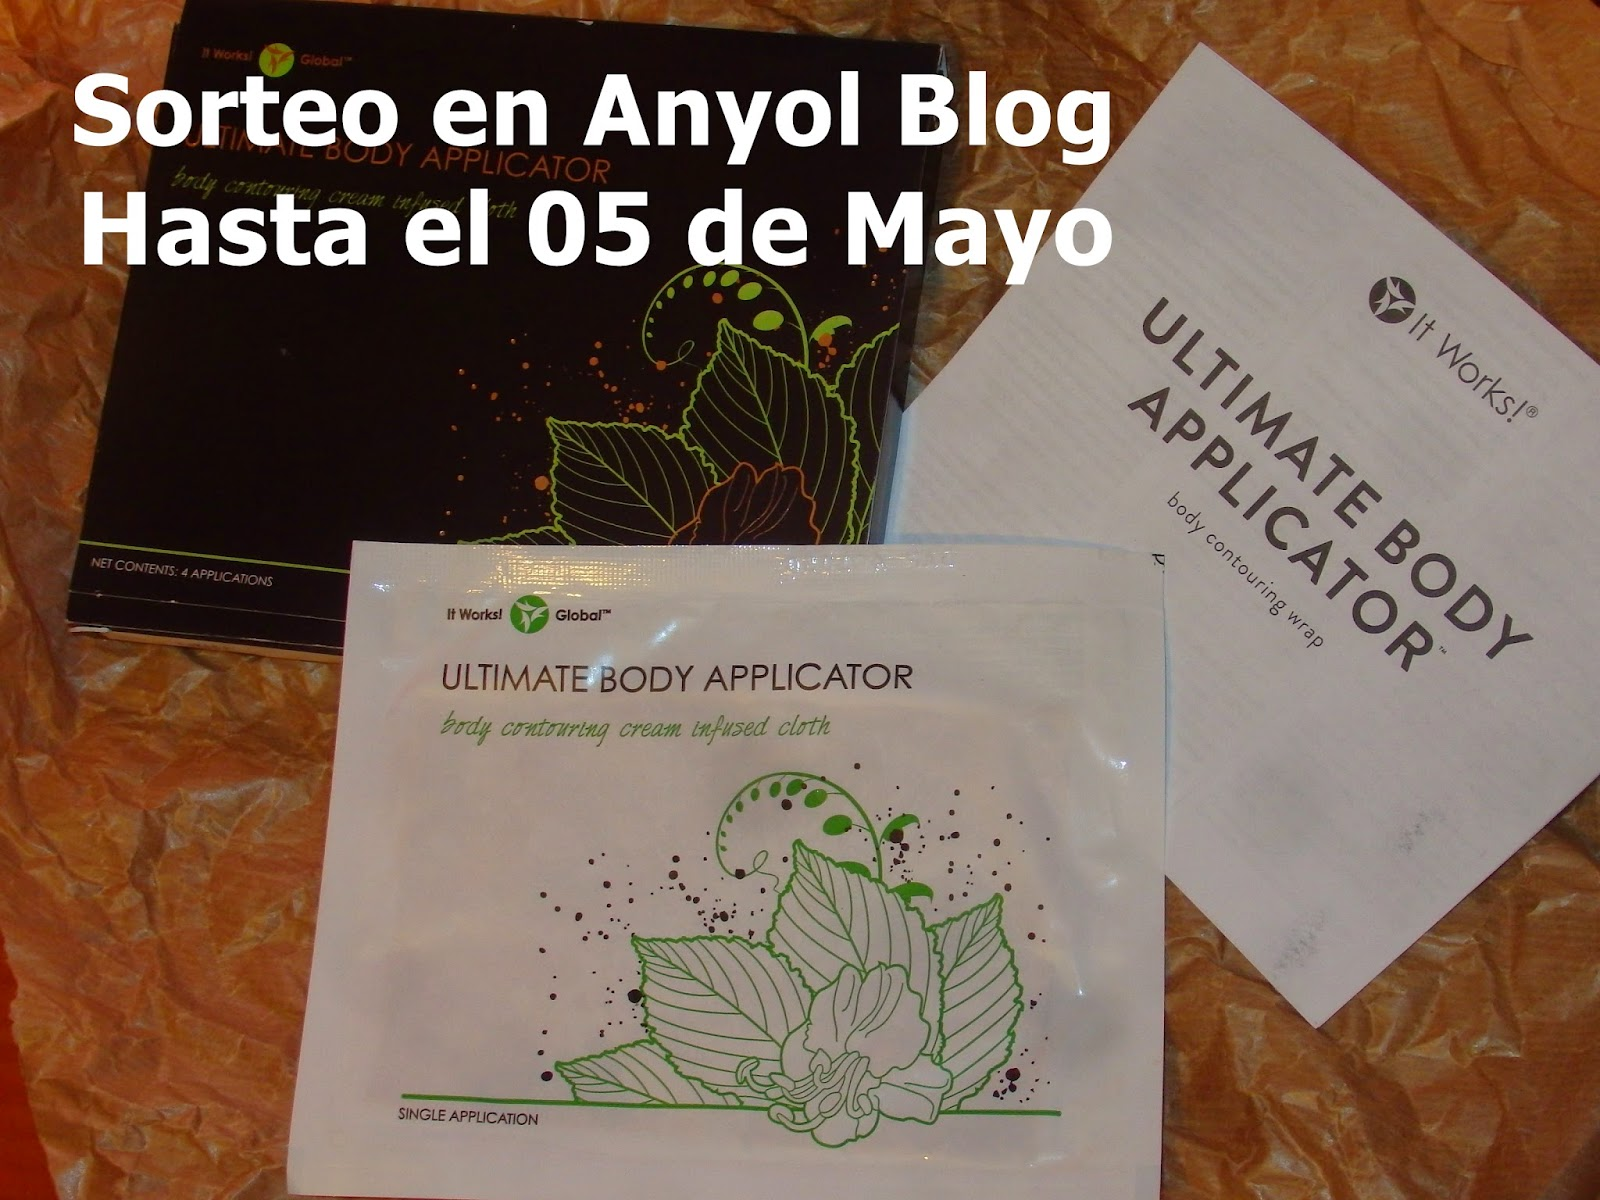 Sorteo de un Ultimate Body Applicator. Un Parche Reductor